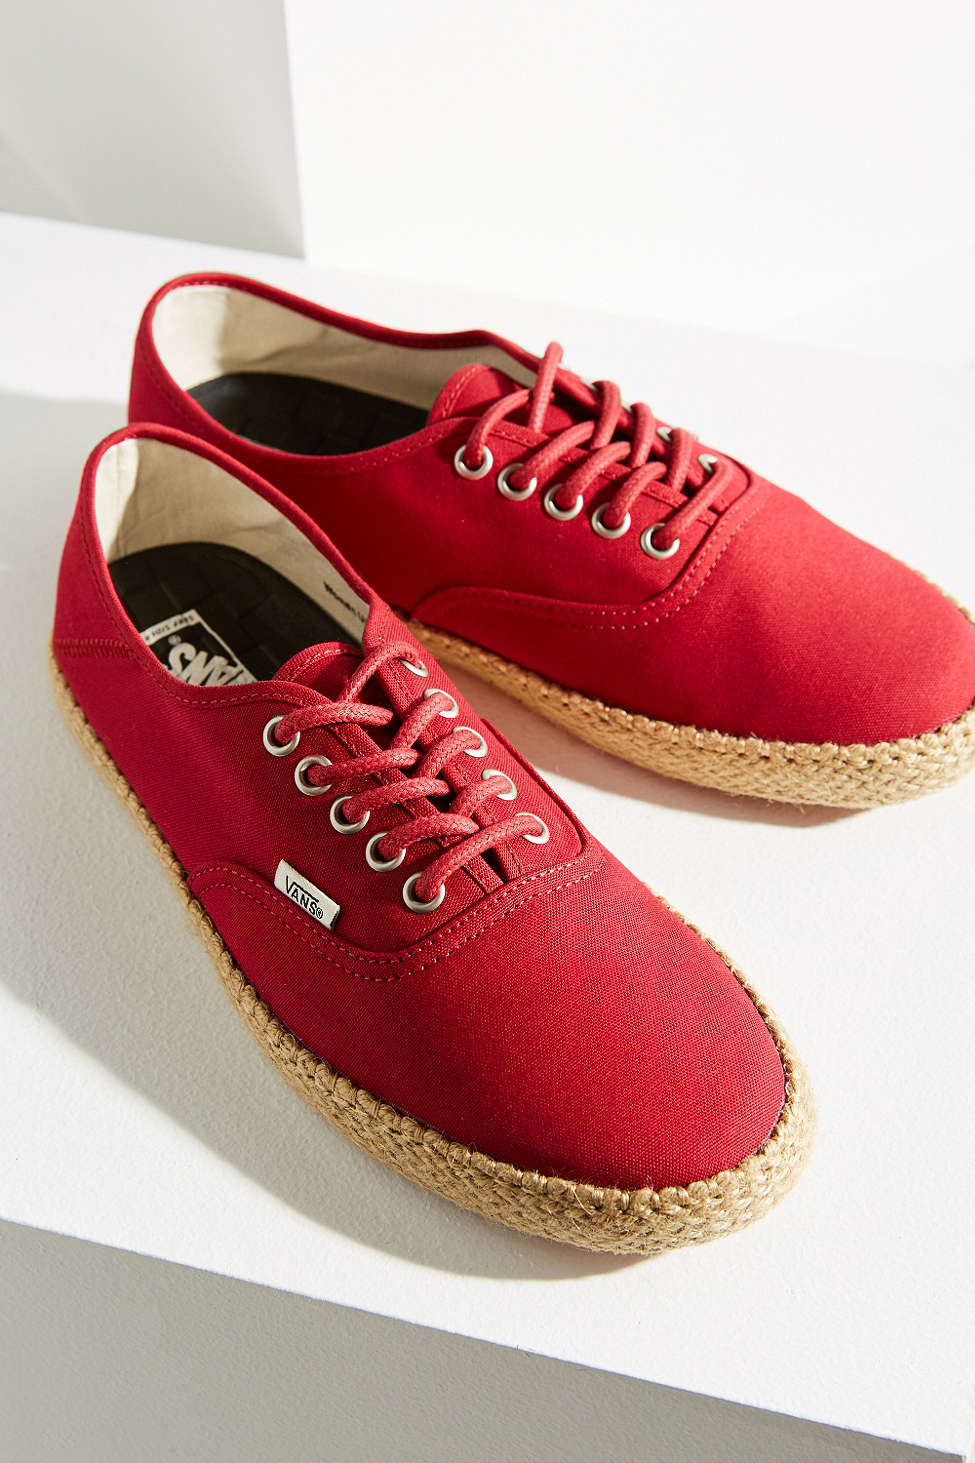 9033e7811ba Lyst - Vans Surf Authentic Espadrille Sneaker in Red